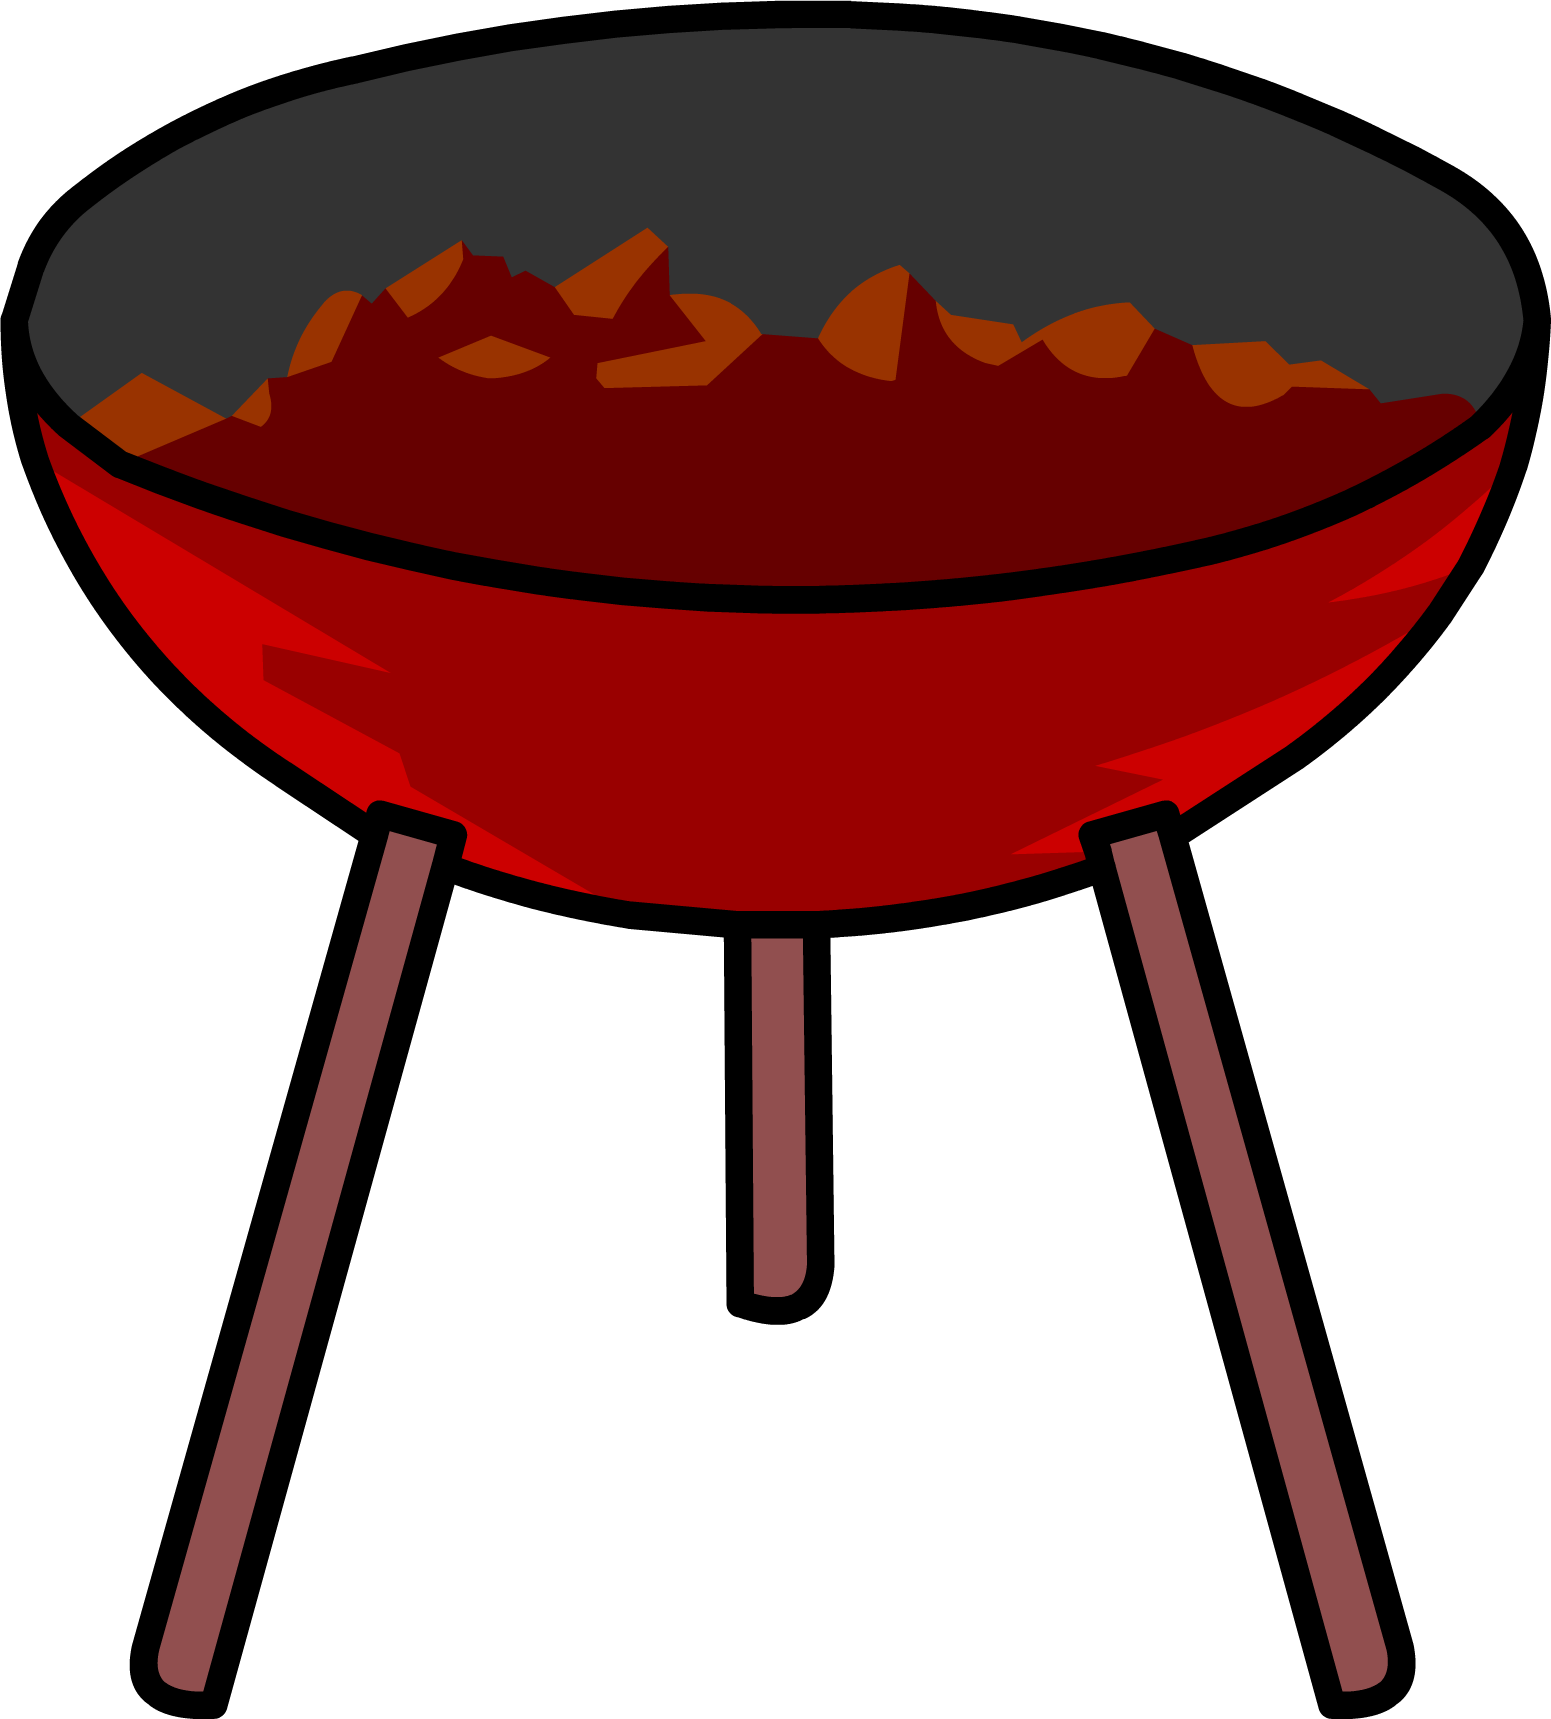 Barbecue png images free. Cookout clipart southern bbq